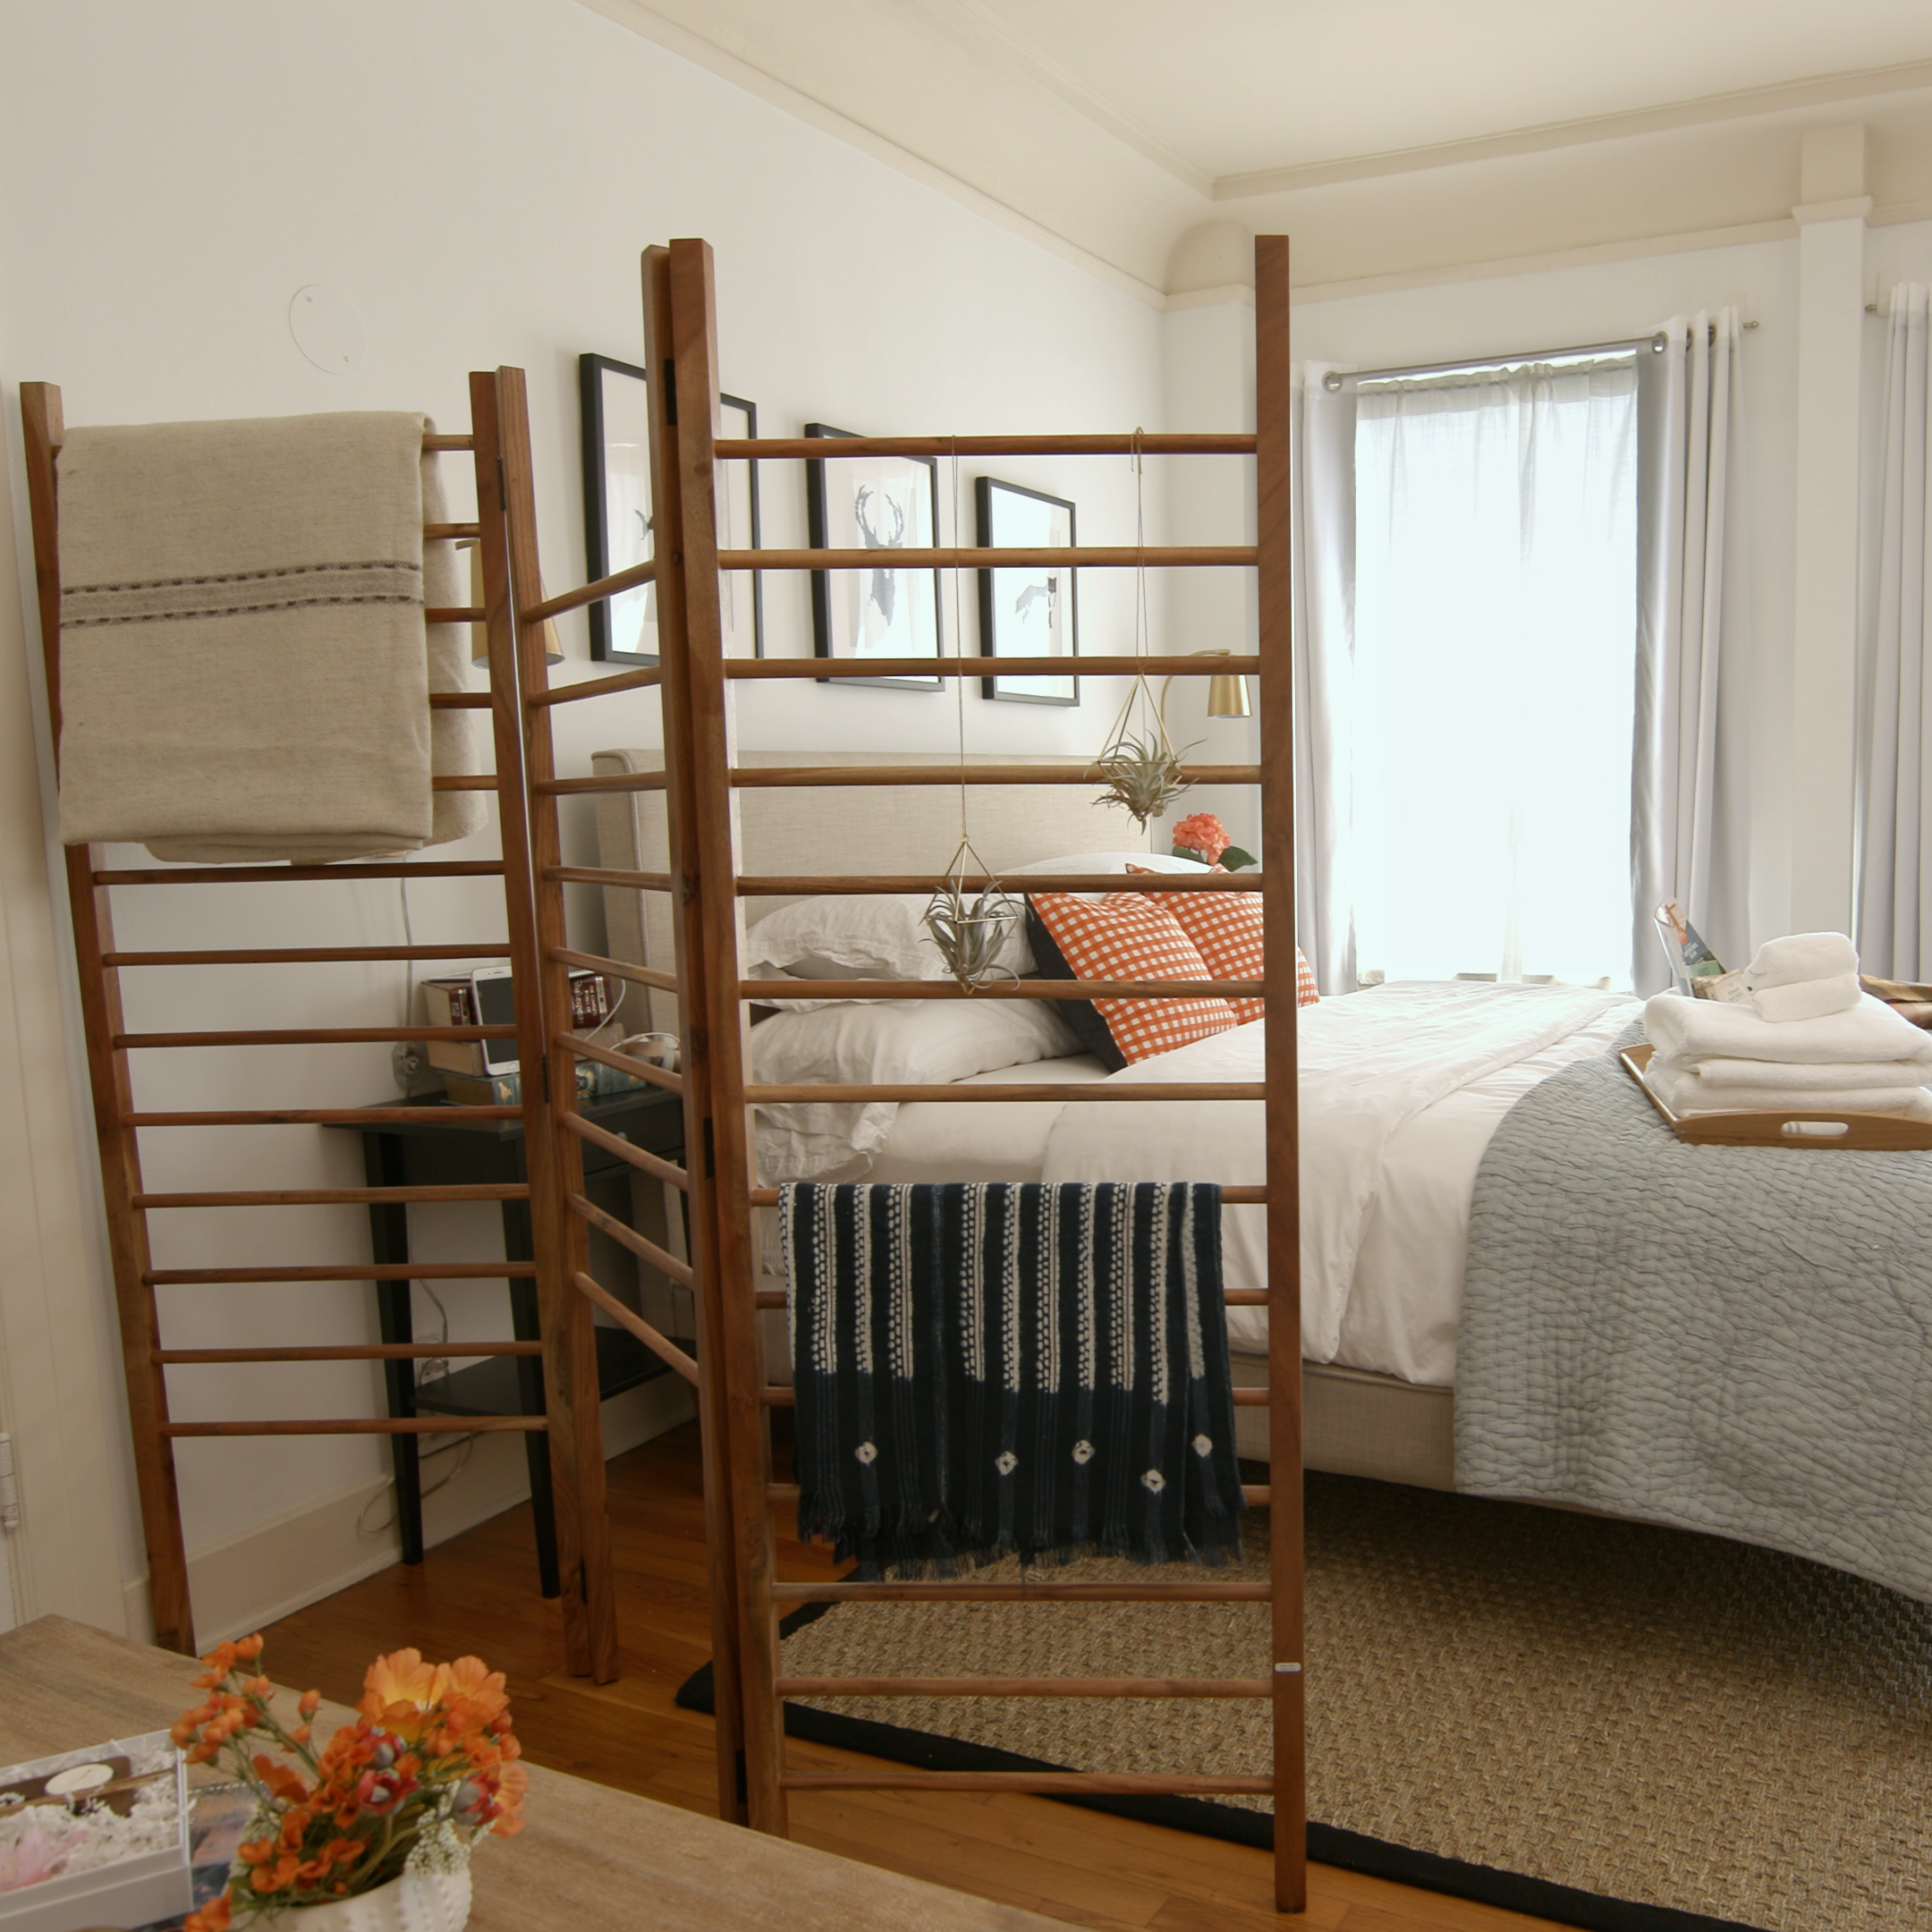 Have extra space in your home why not try renting it out on airbnb